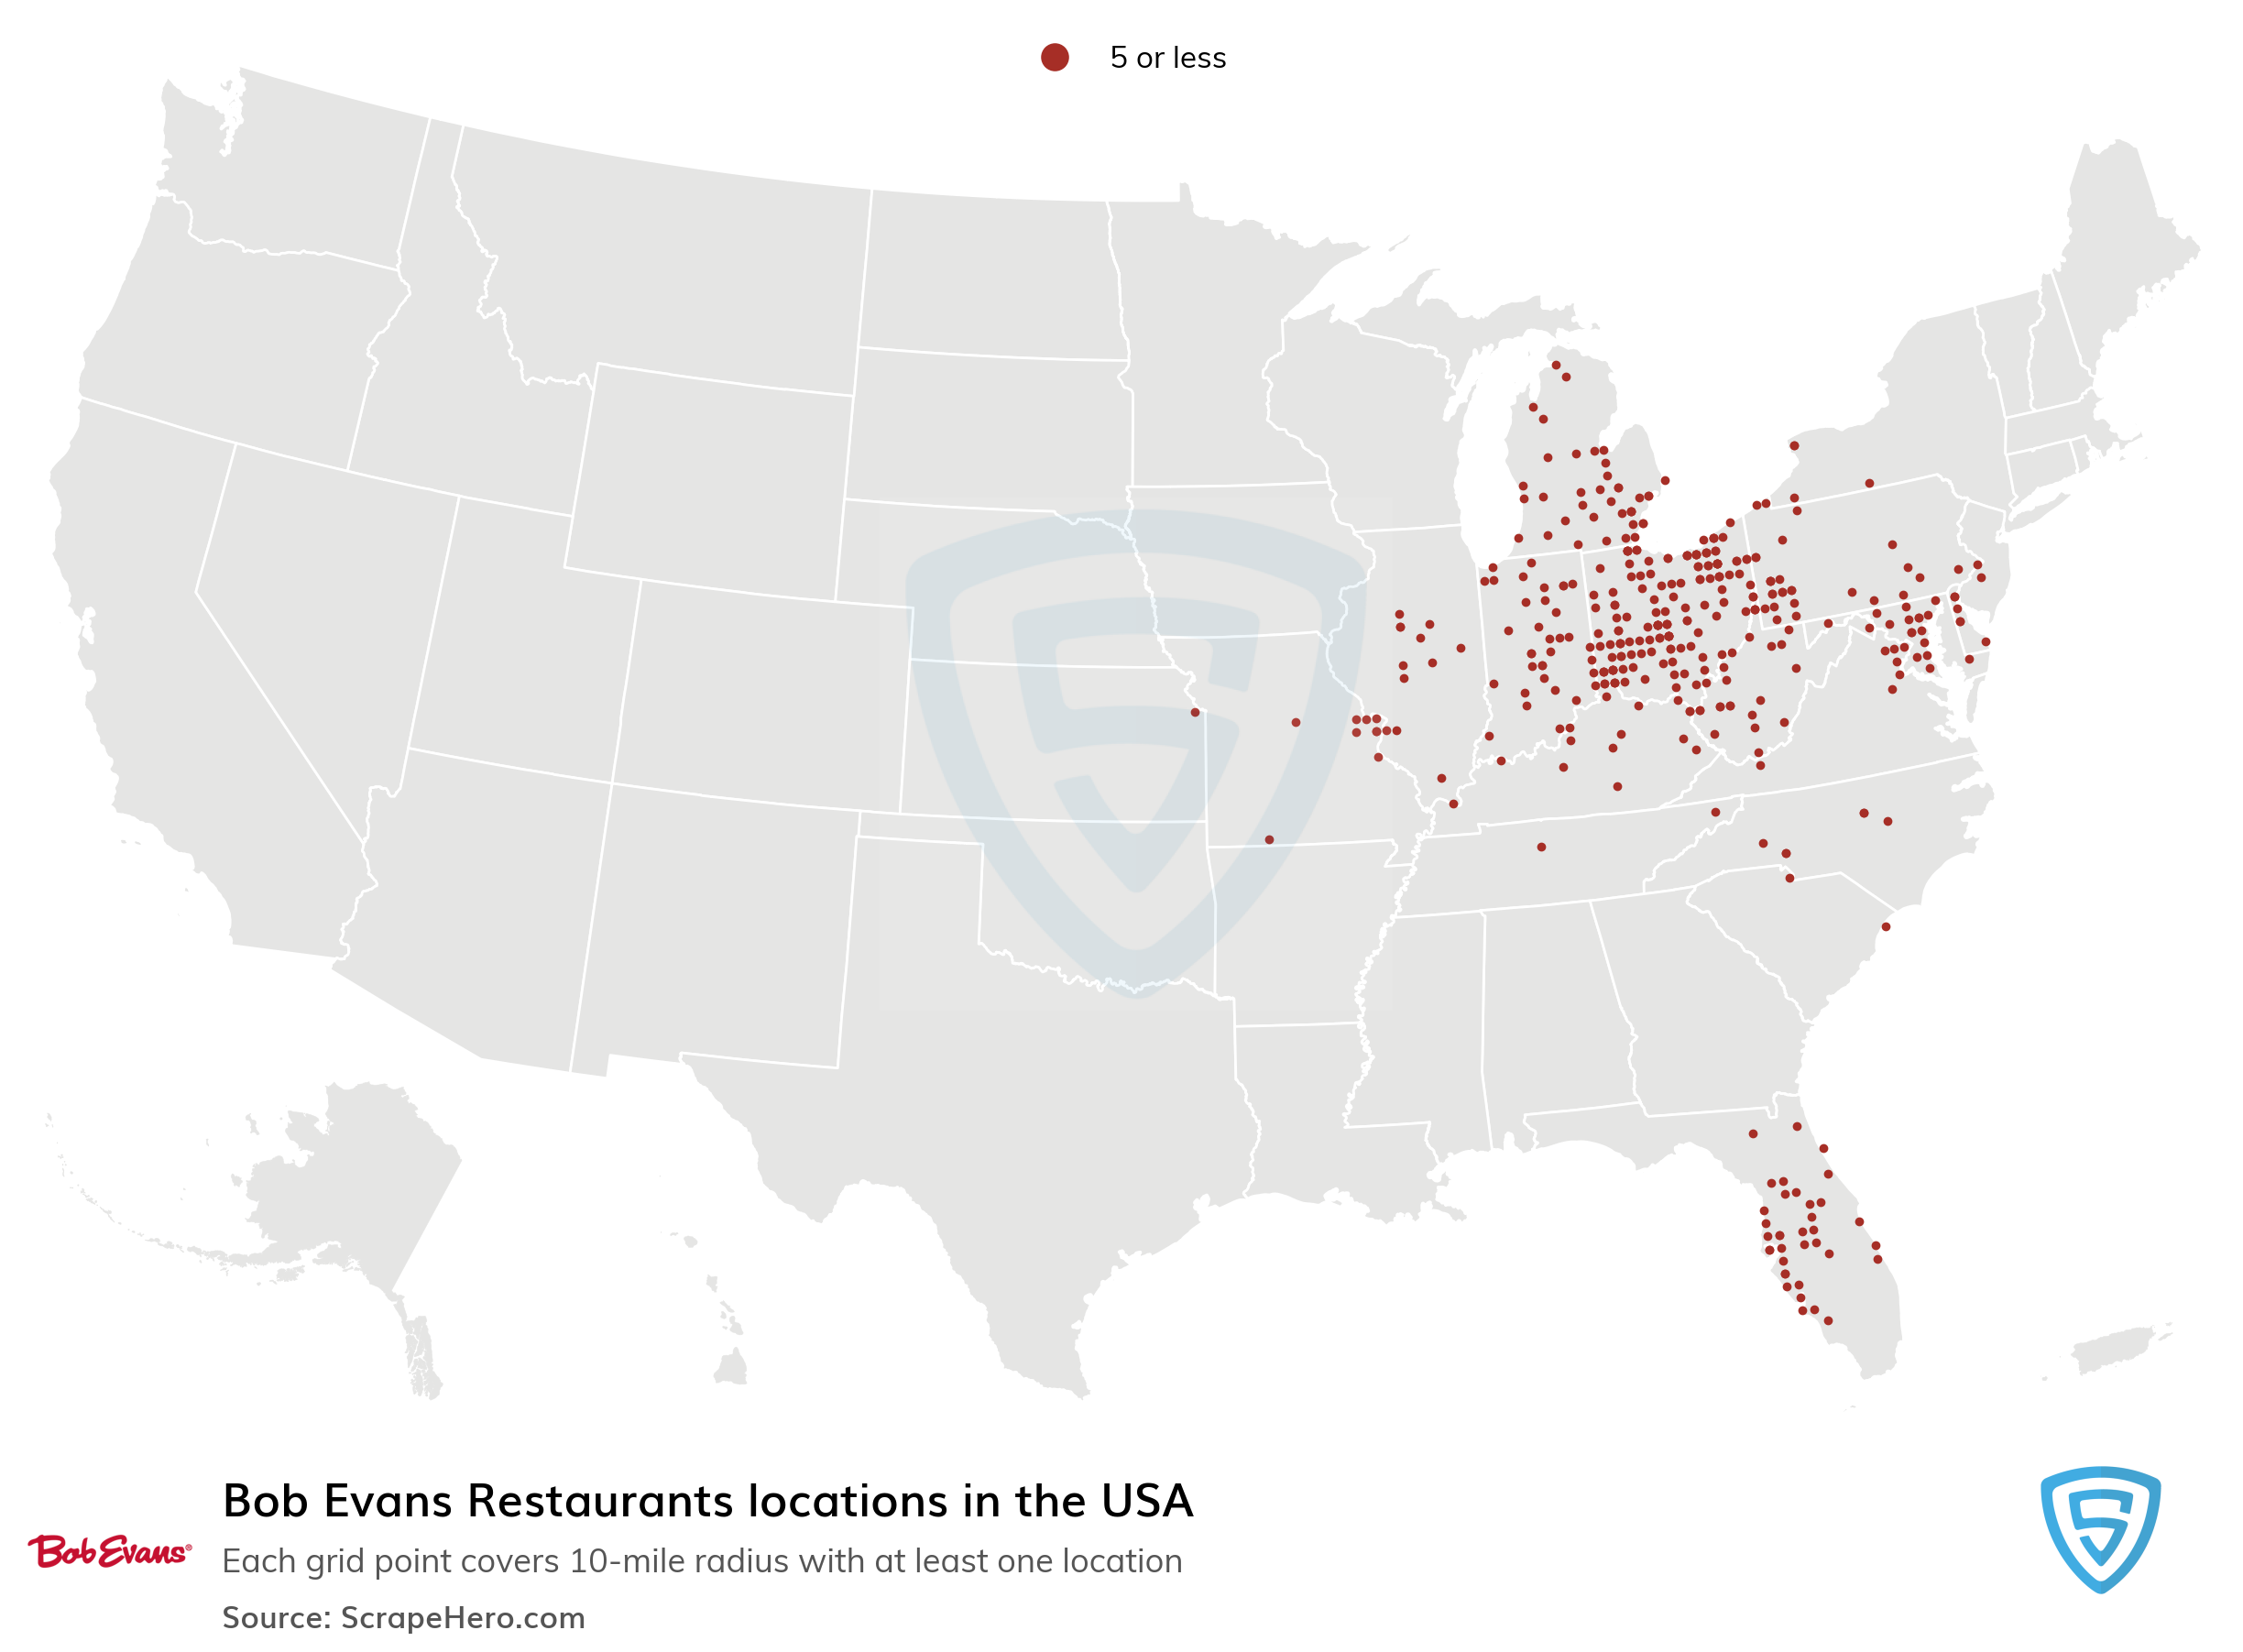 Map of Bob Evans Restaurants locations in the United States in 2021